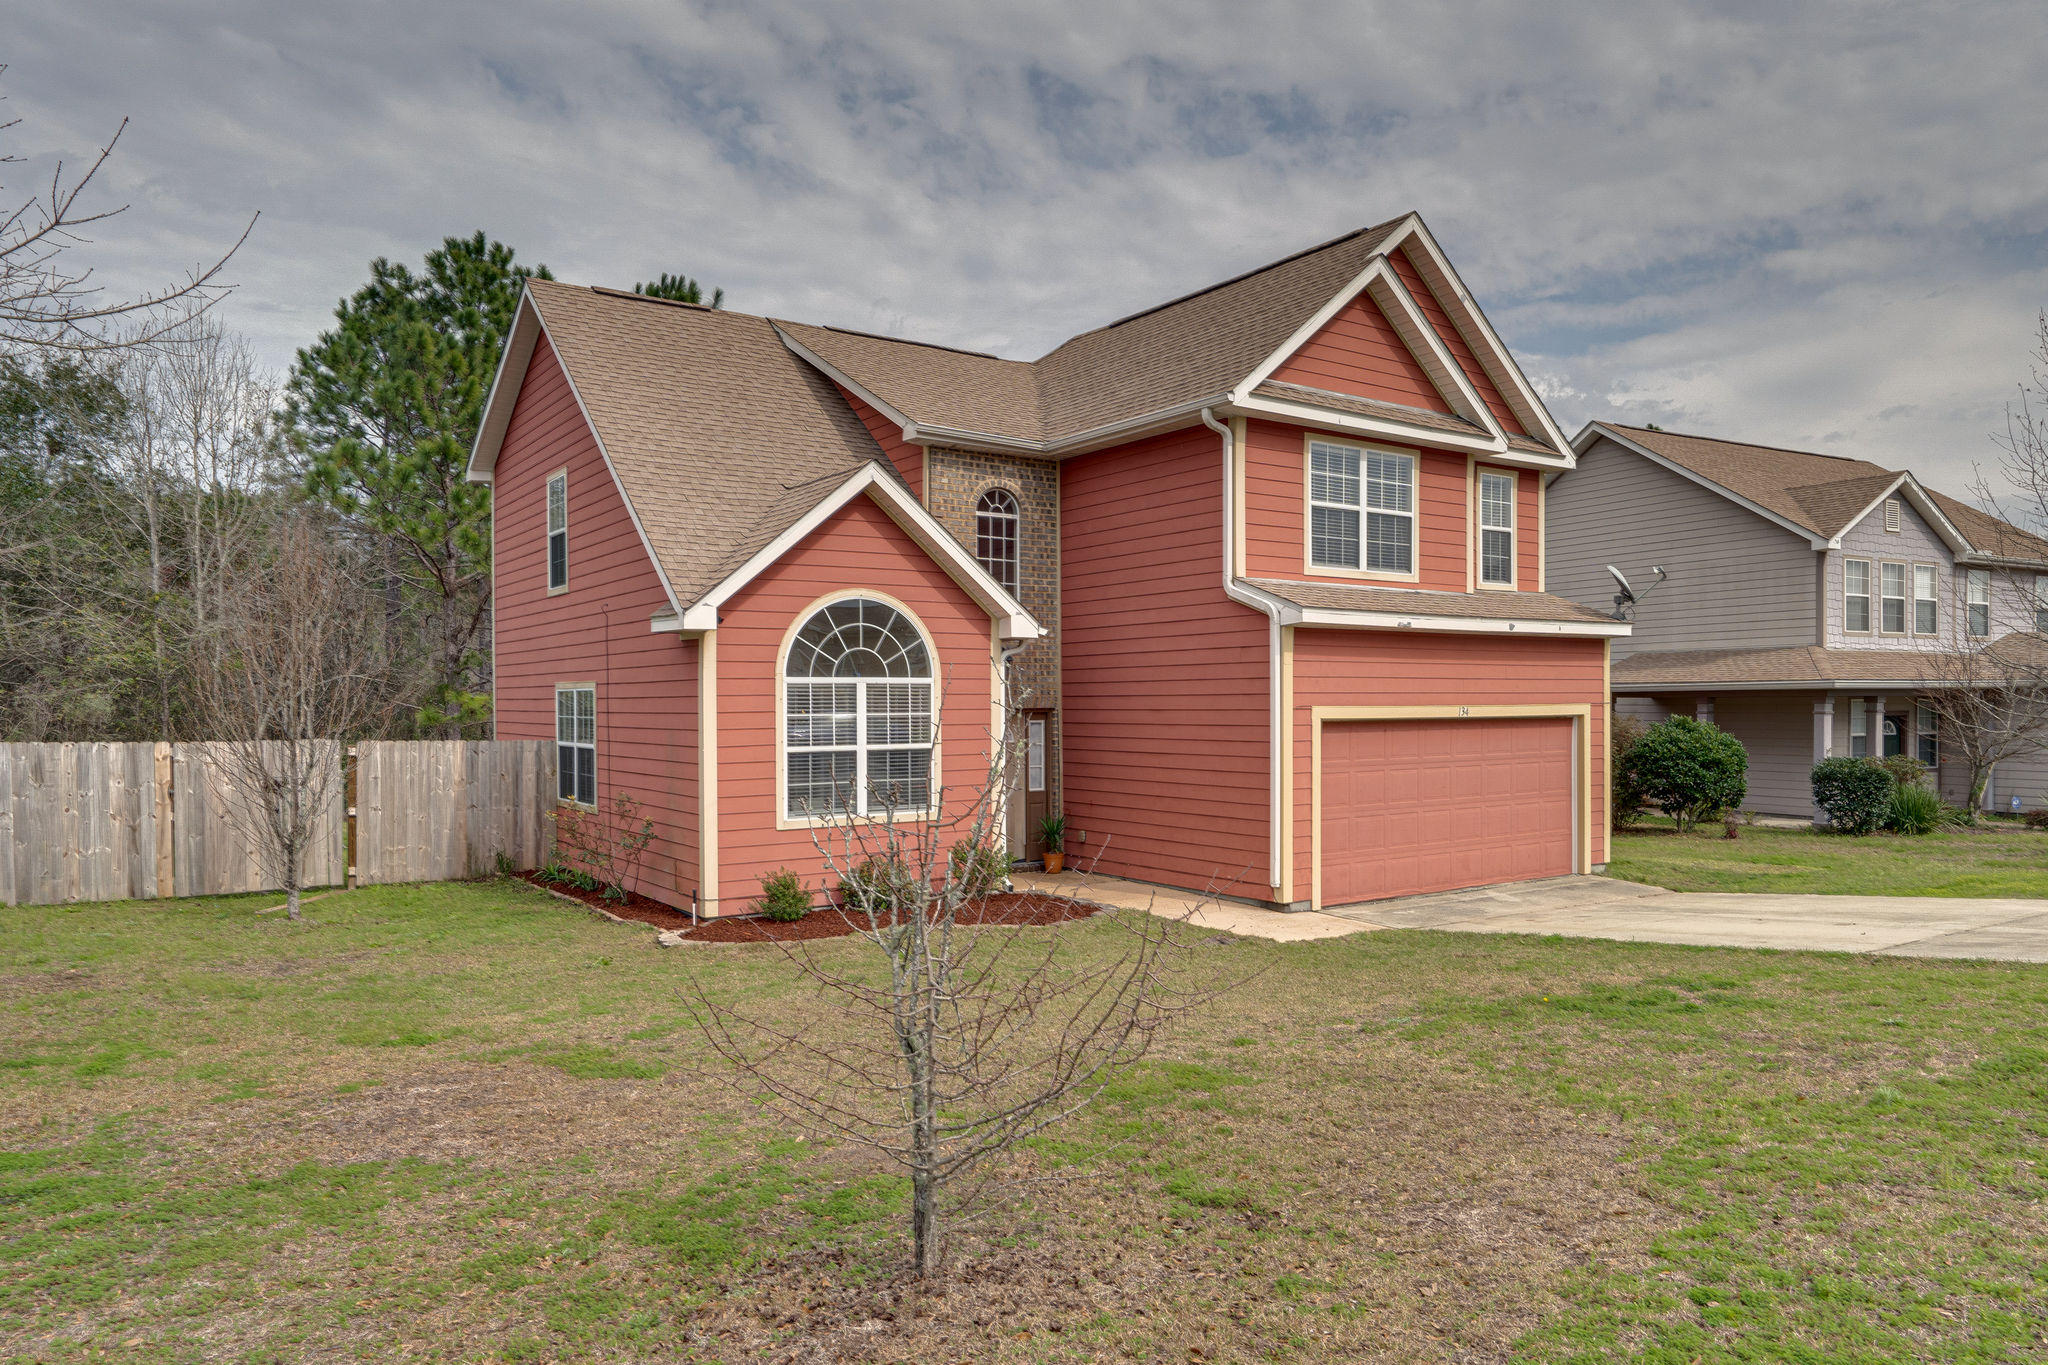 Photo of home for sale at 134 Peoria, Crestview FL